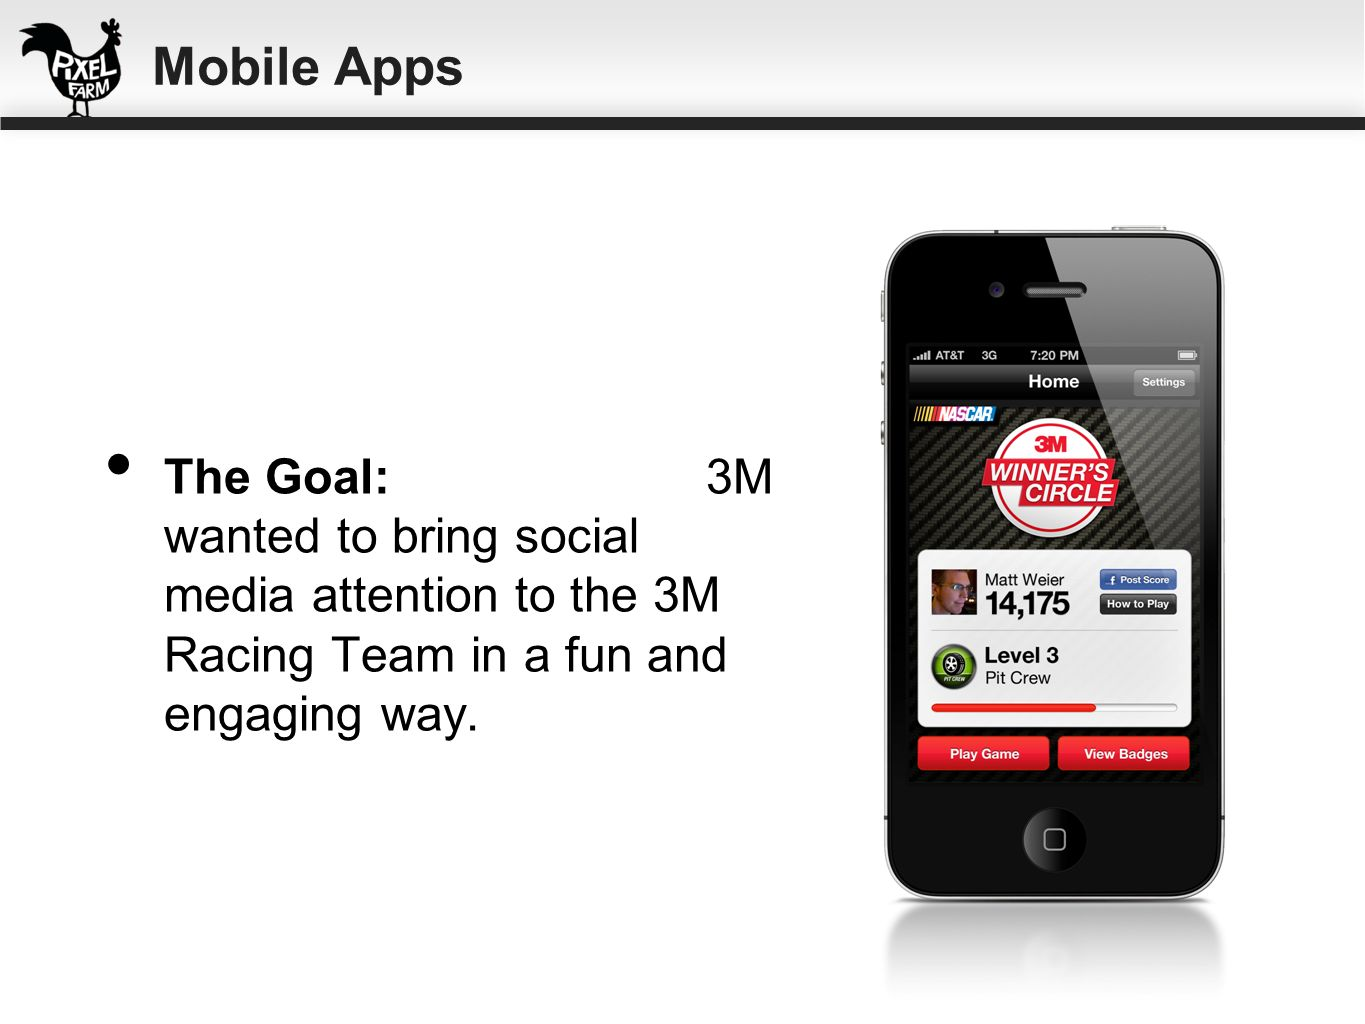 Mobile Apps The Goal: 3M wanted to bring social media attention to the 3M Racing Team in a fun and engaging way.